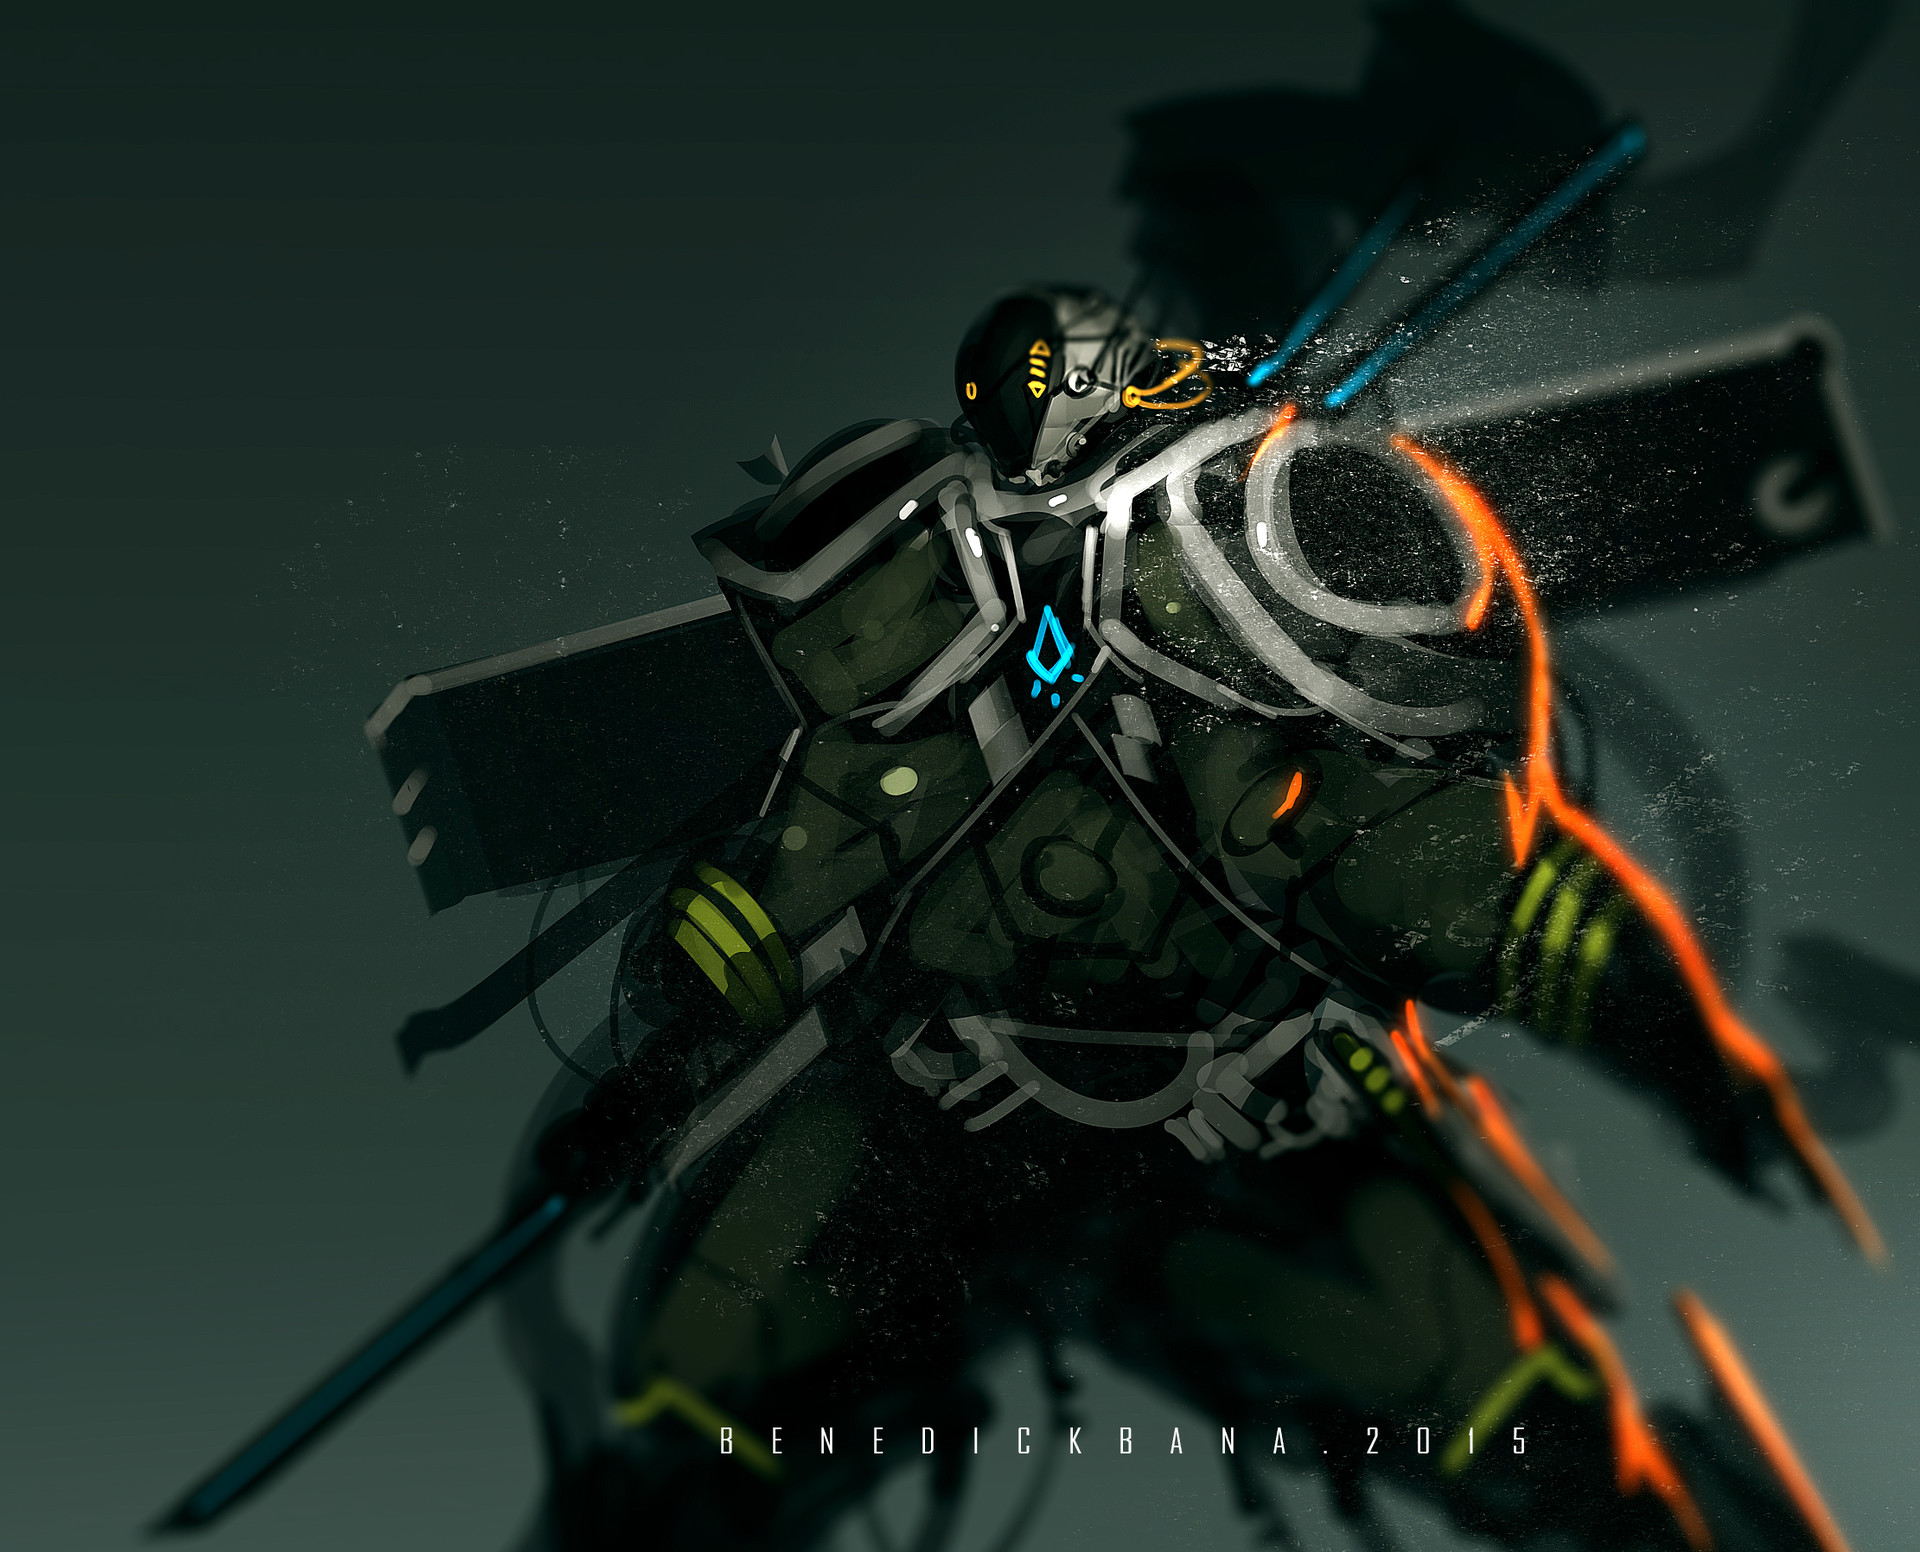 Benedick bana hunter assassin level